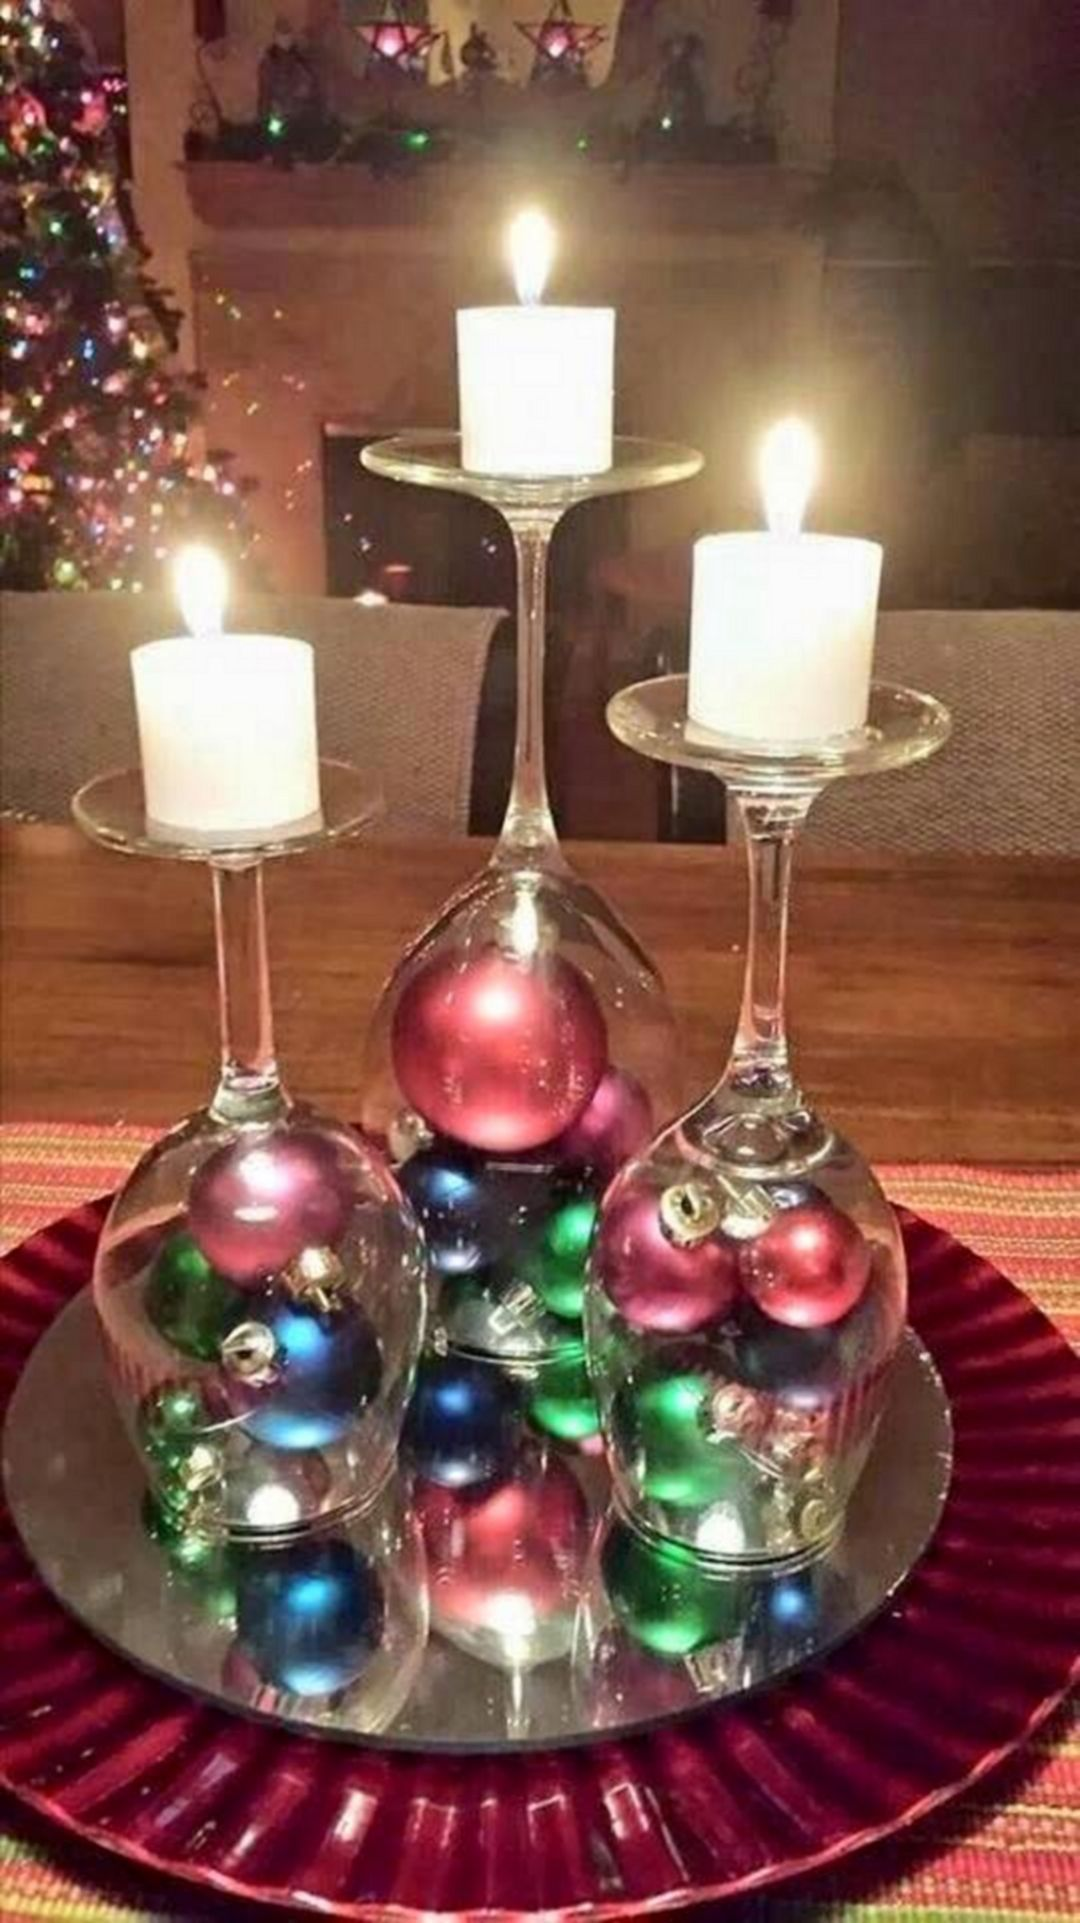 Christmas candles wonderful christmas candle decoration ideas - Wonderful Christmas Decor Diy You Must Have In Your Home 75 Best Ideas